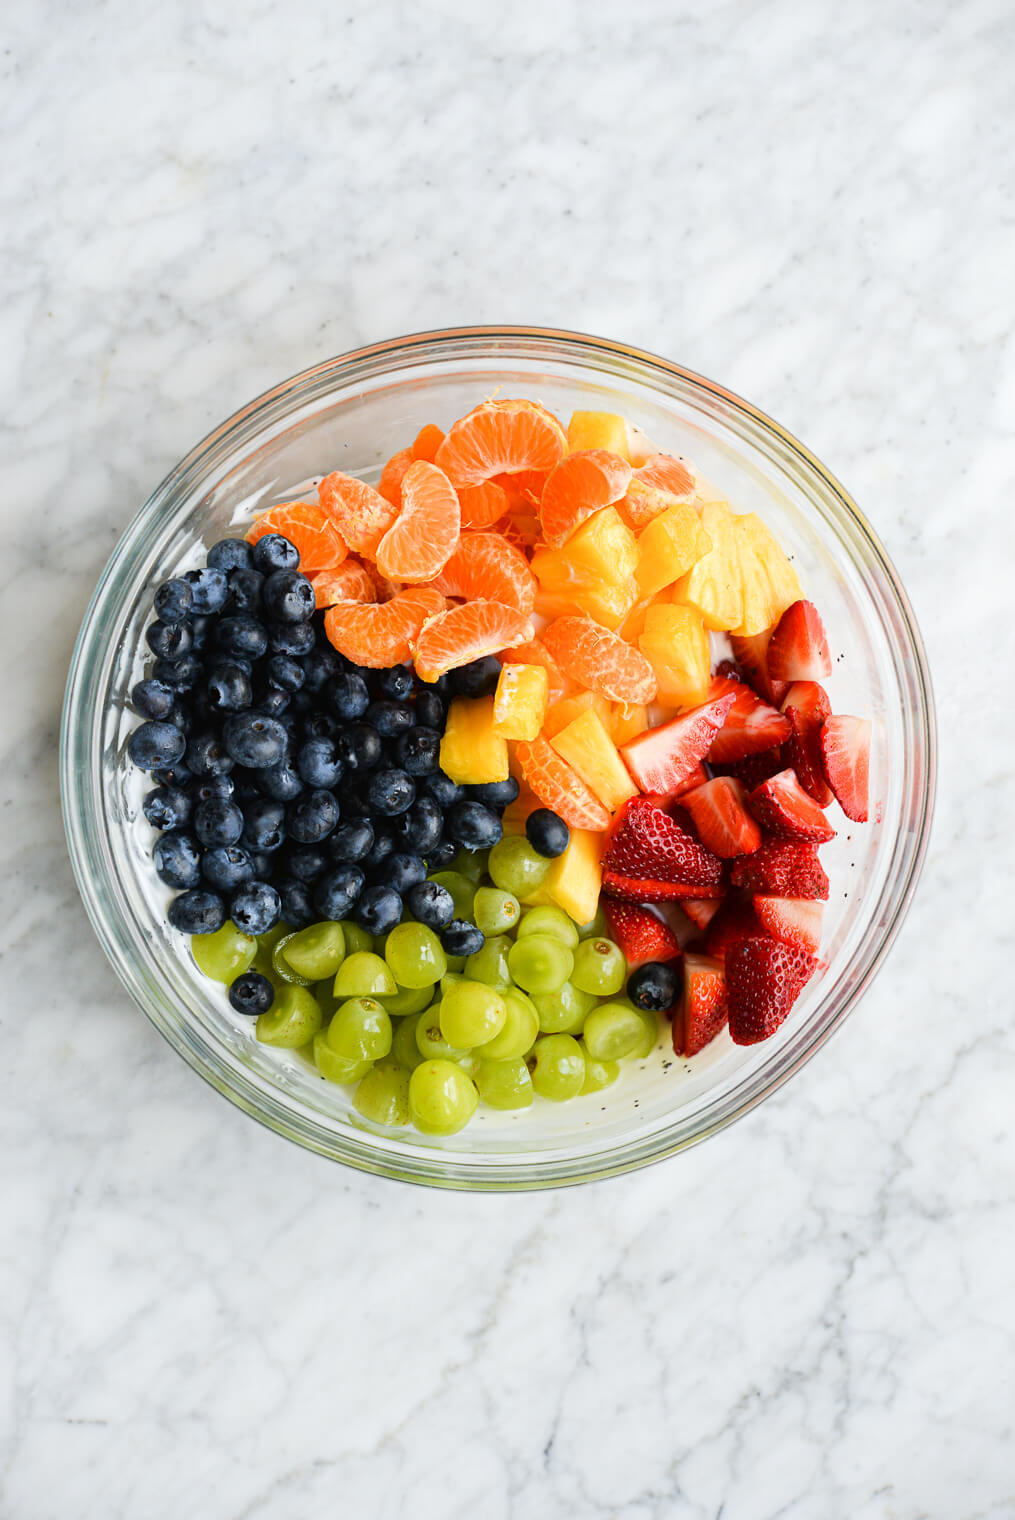 the fruit for a fruit salad (oranges, strawberries, grapes, and blueberries) in a clear bowl on a marble surface